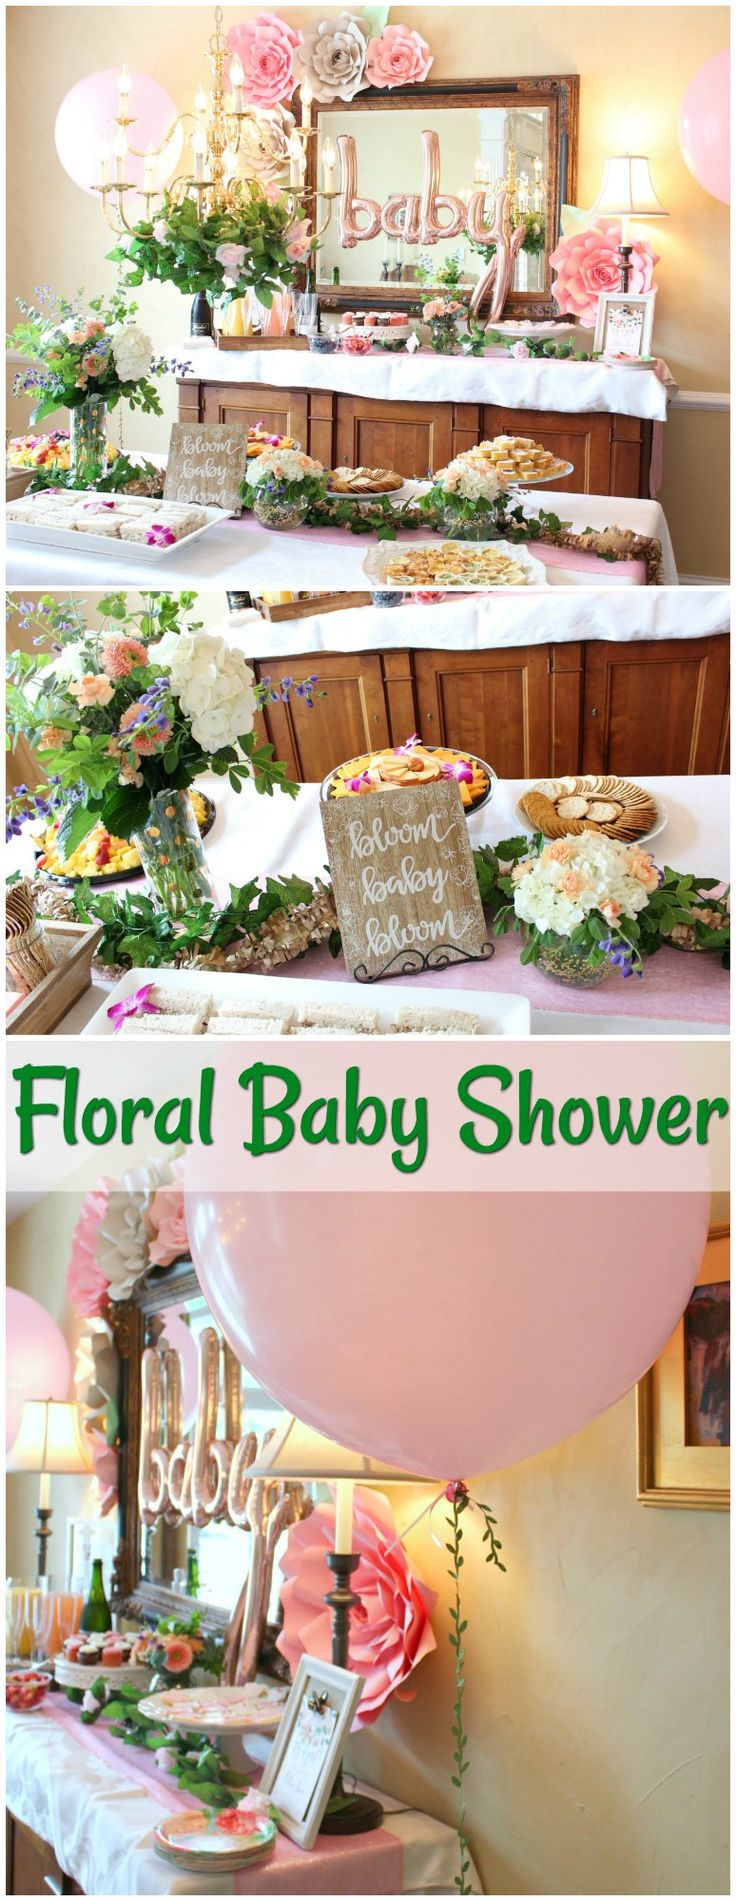 Floral and Flower Crown Baby Shower Ideas